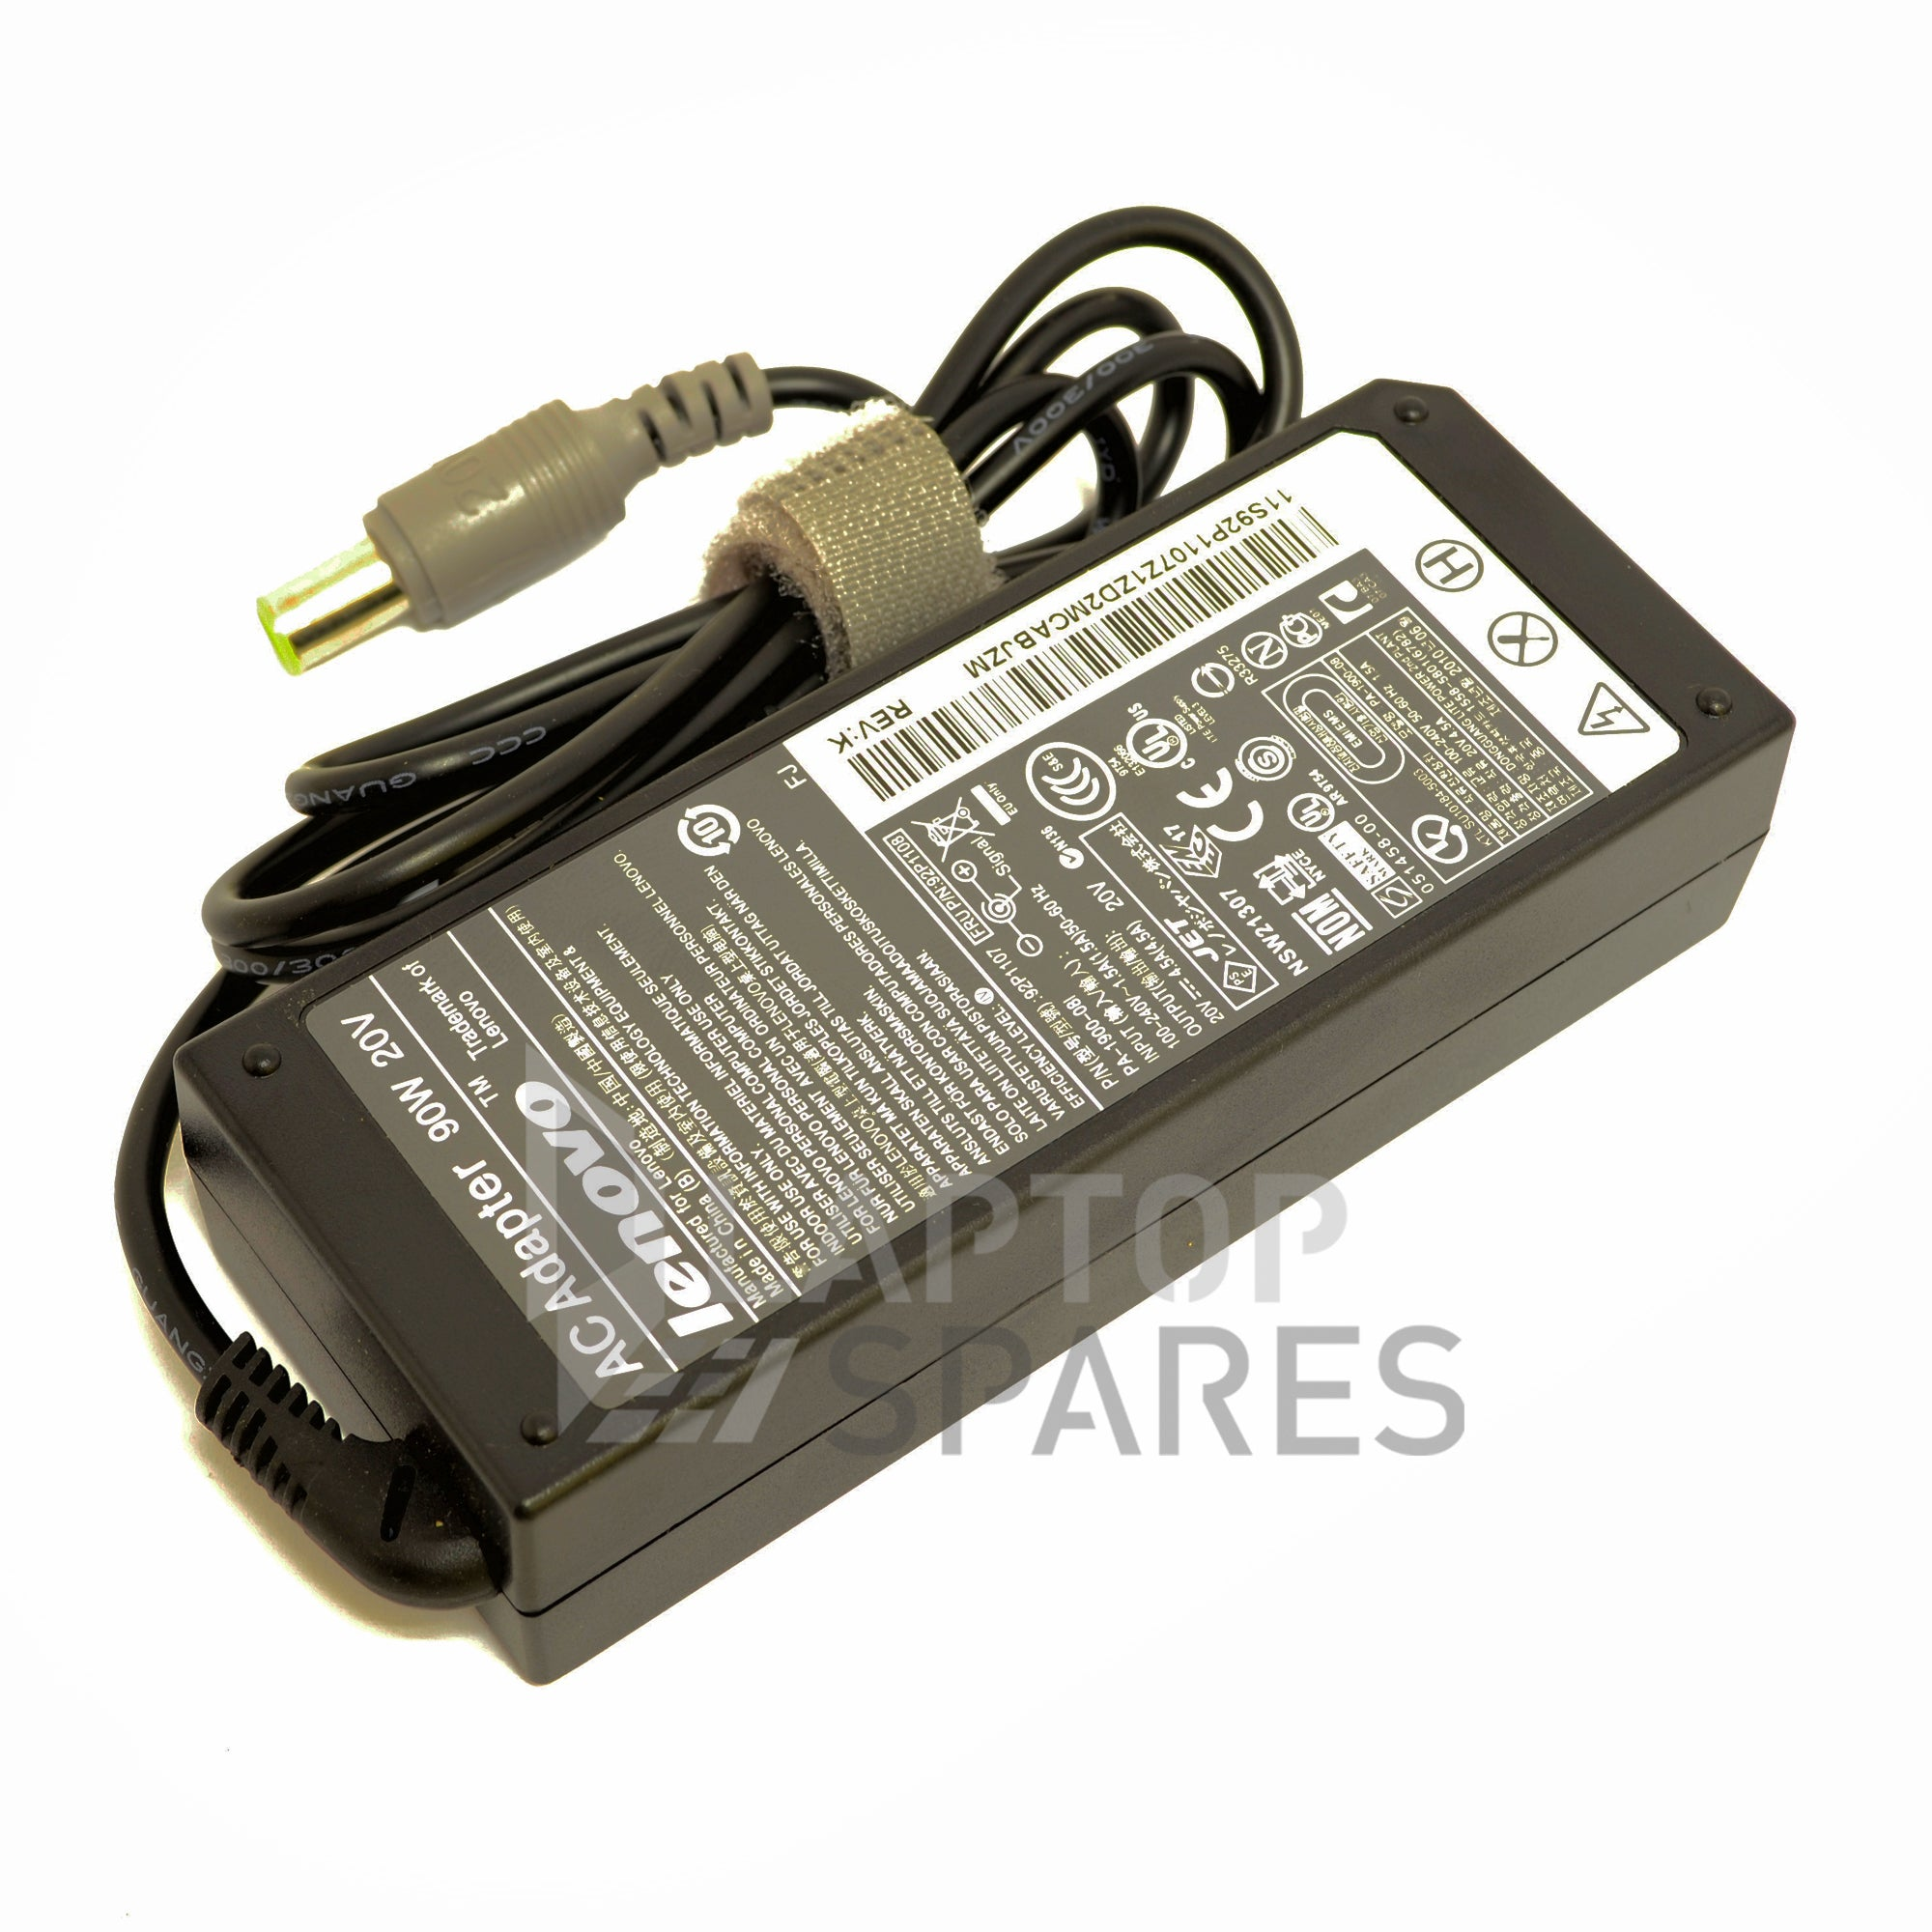 Lenovo ThinkPad W500 W510 Laptop AC Adapter Charger